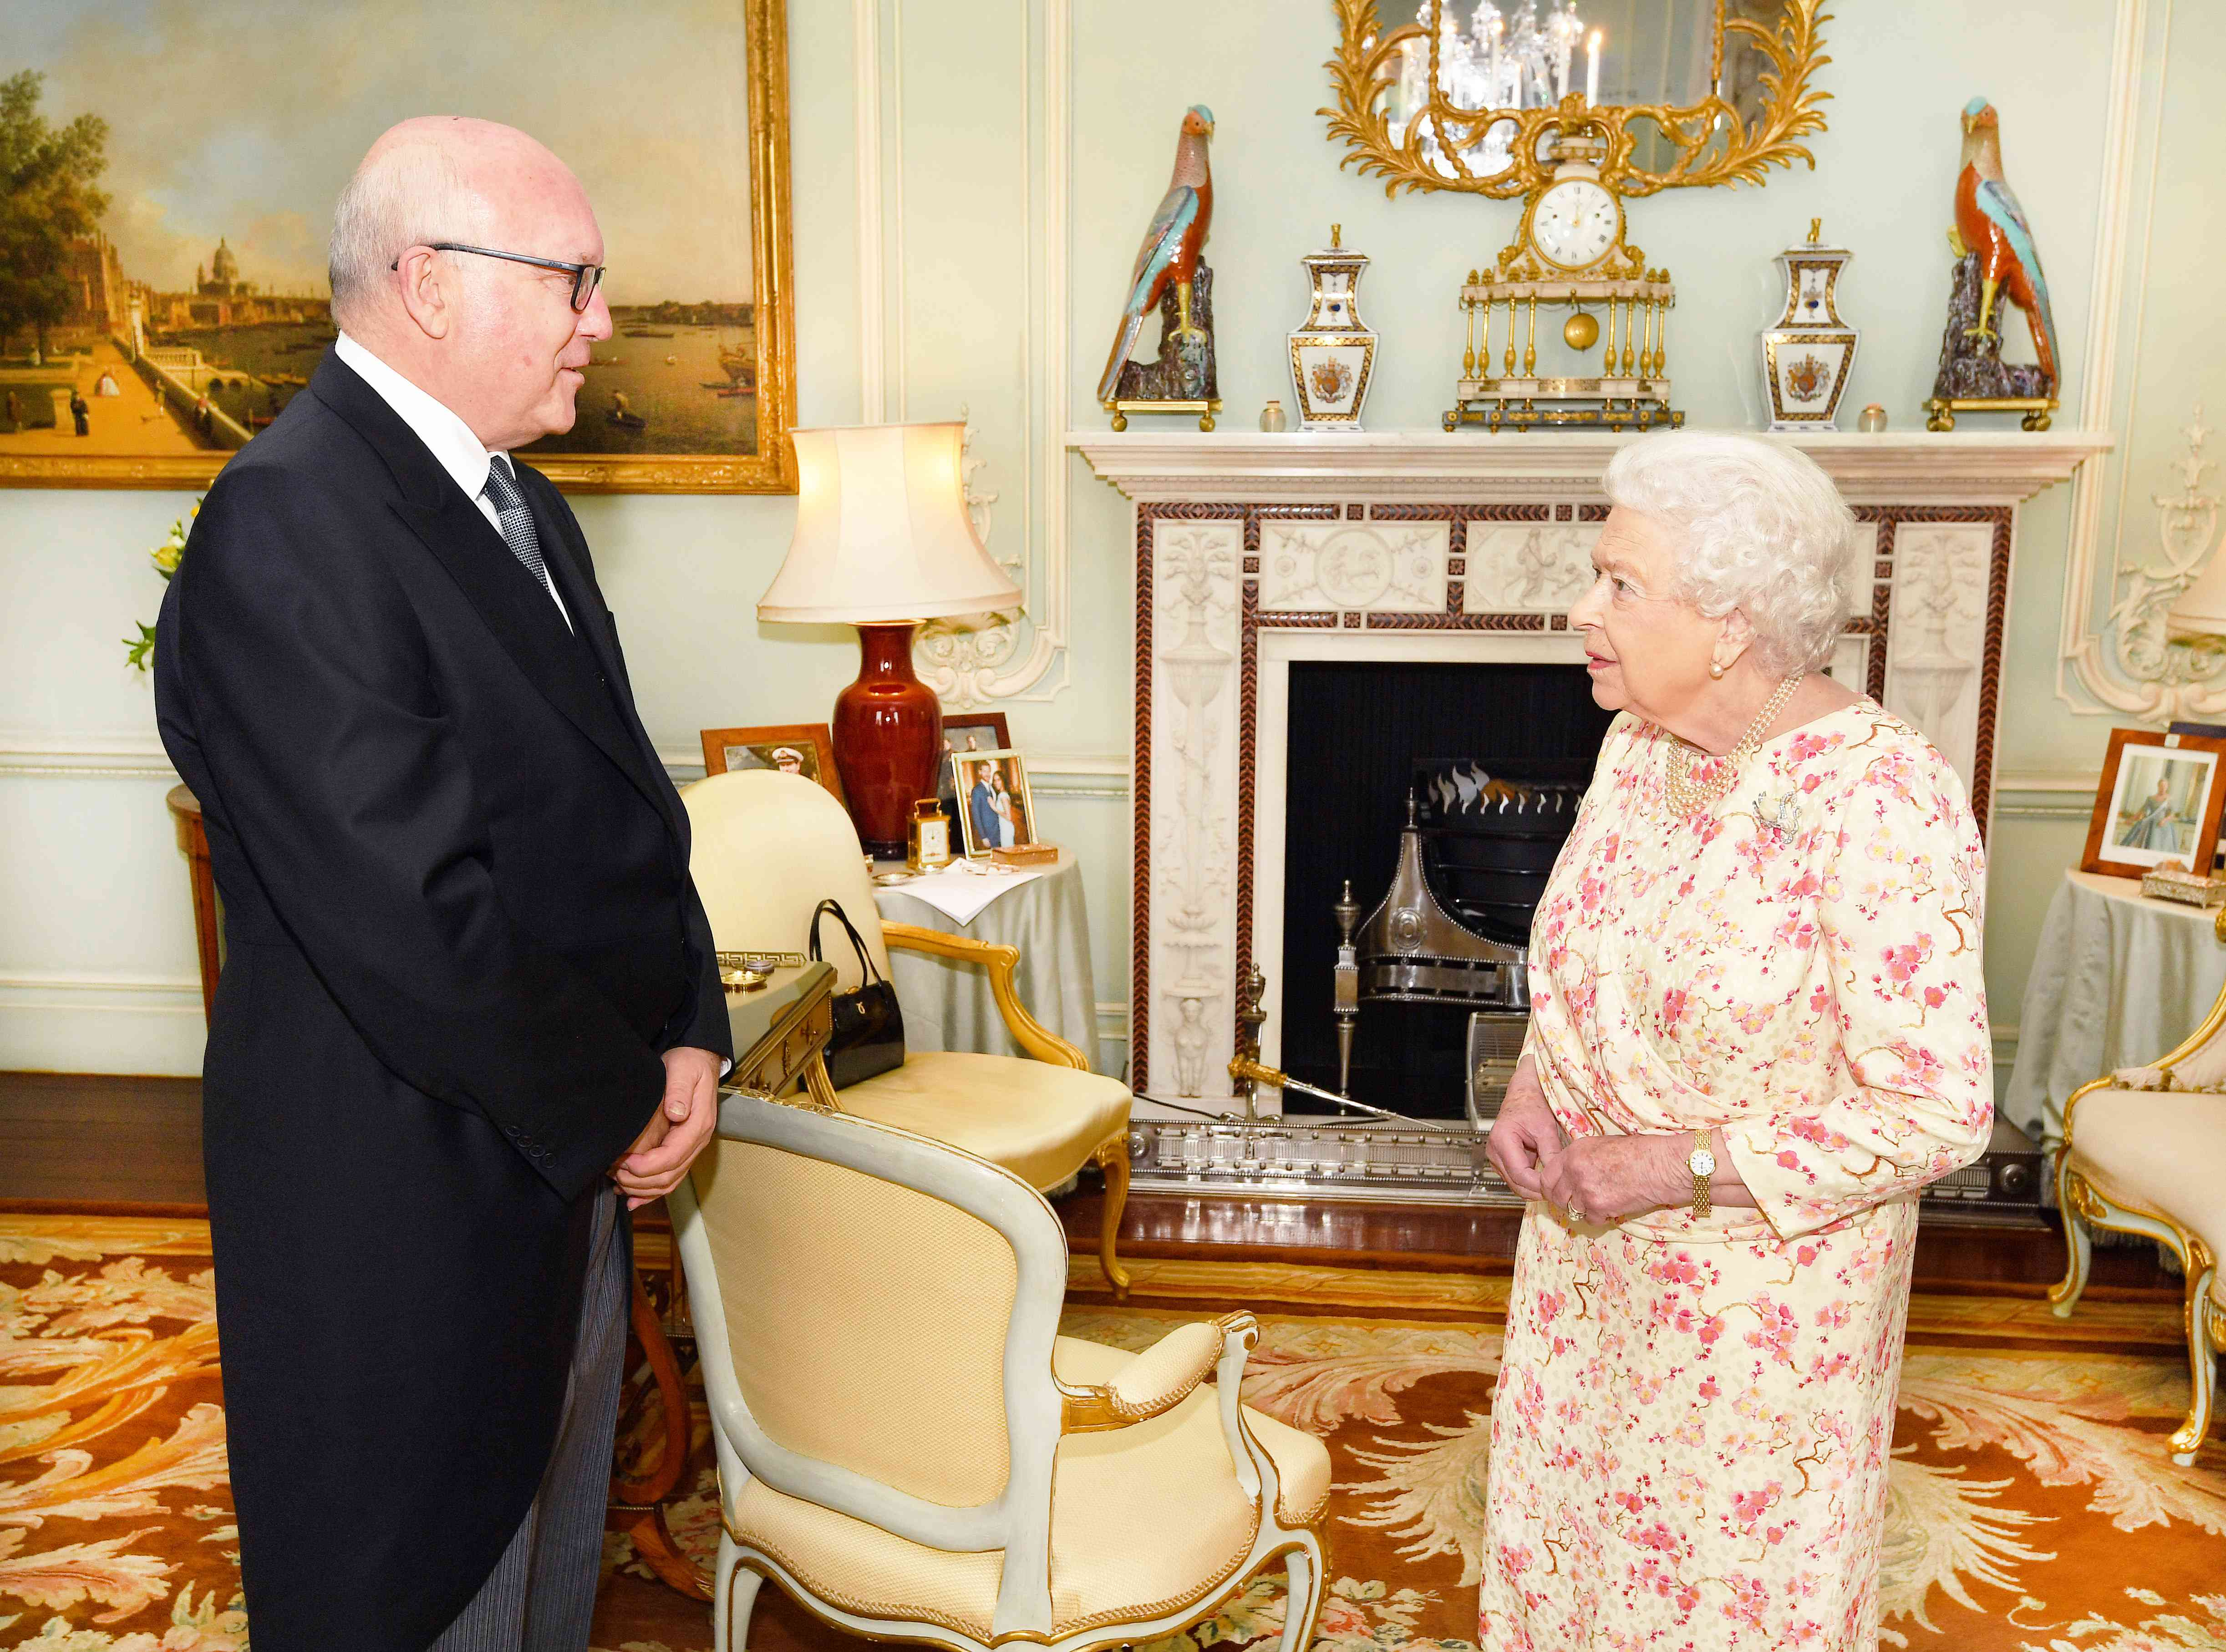 Queen Elizabeth II talks with the Honorable George Brandis, the Australian High Commissioner to the United Kingdom